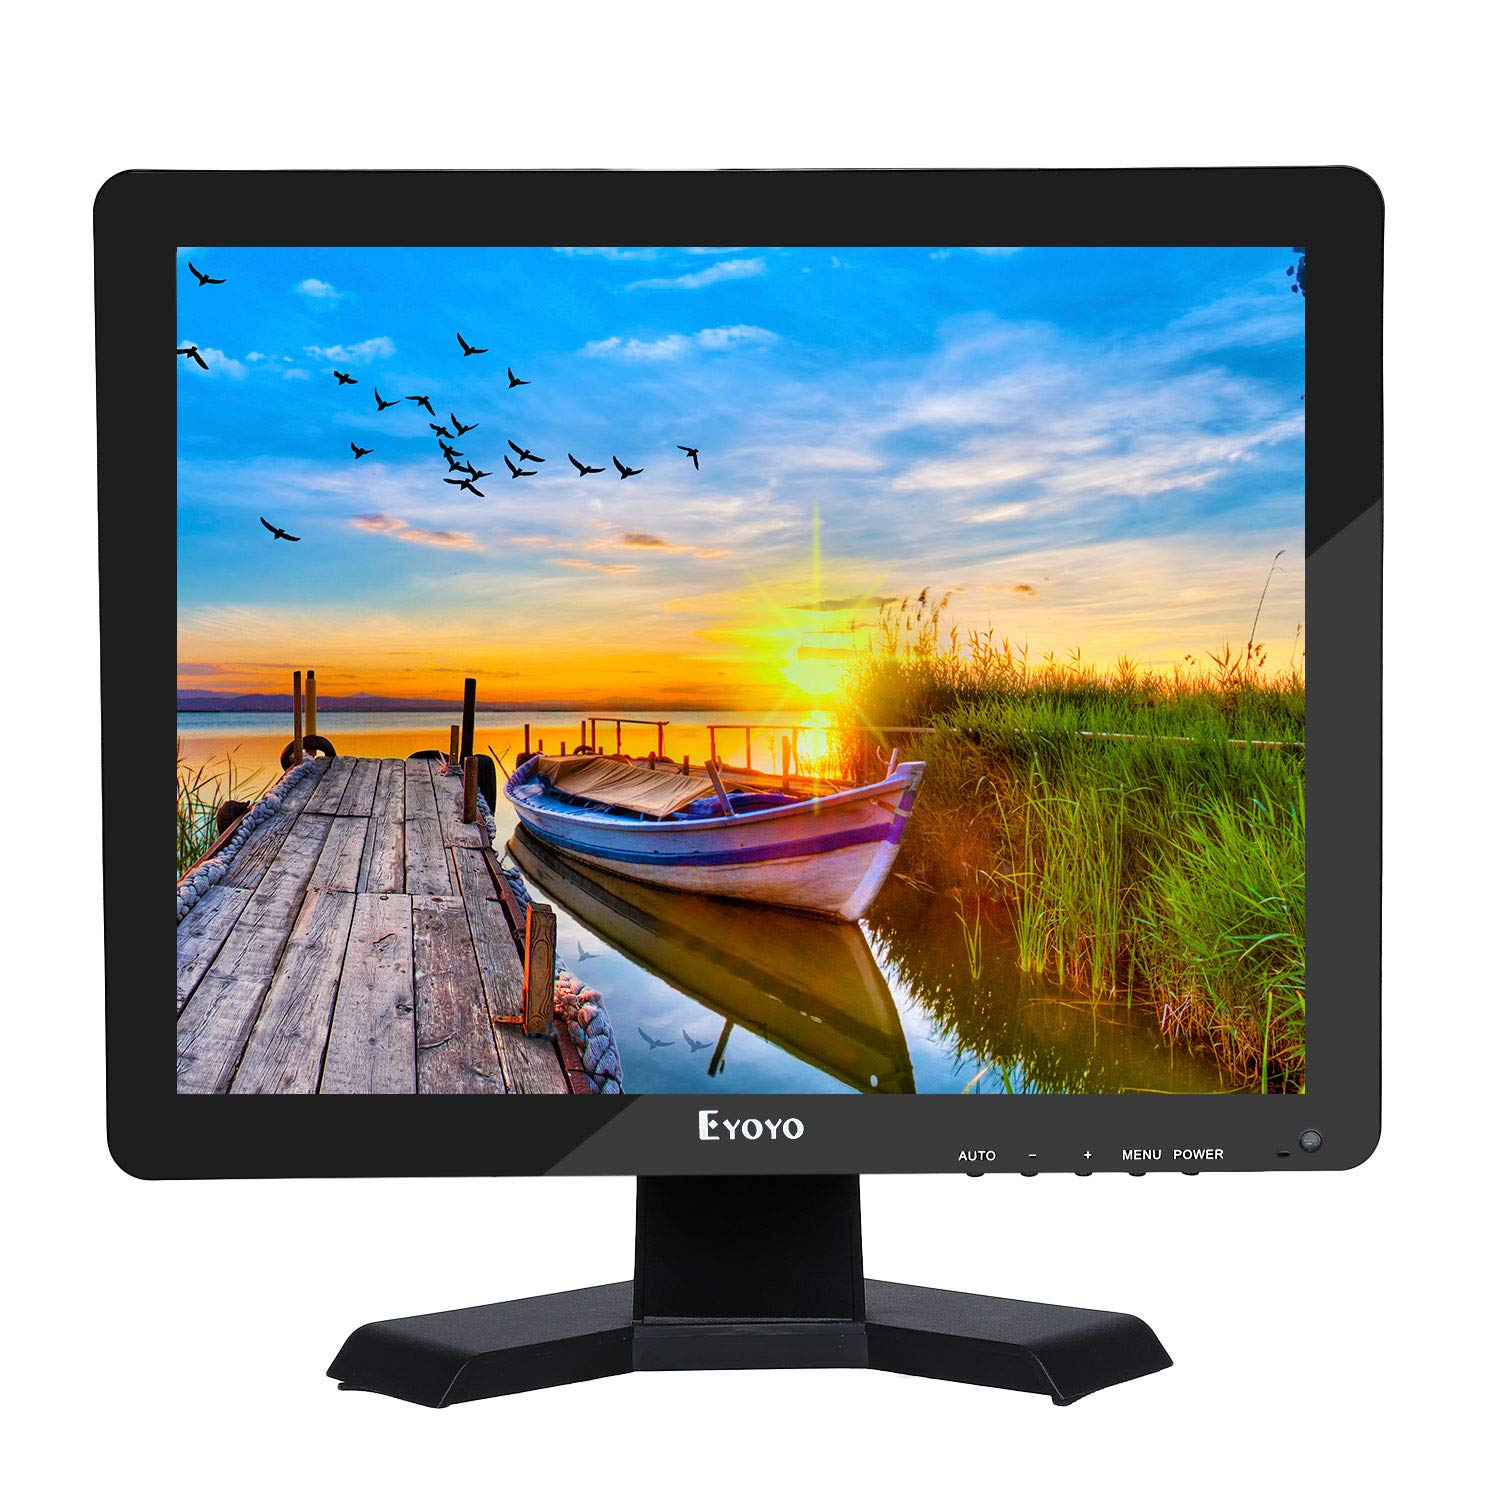 Eyoyo 15'' Inch Monitor 1024x768 HDMI Monitor 4:3 TFT LCD Color Screen with BNC/VGA/AV/HDMI/USB Earphone Output for PC Laptop Security Monitoring Built-in Speaker by Eyoyo (Image #1)